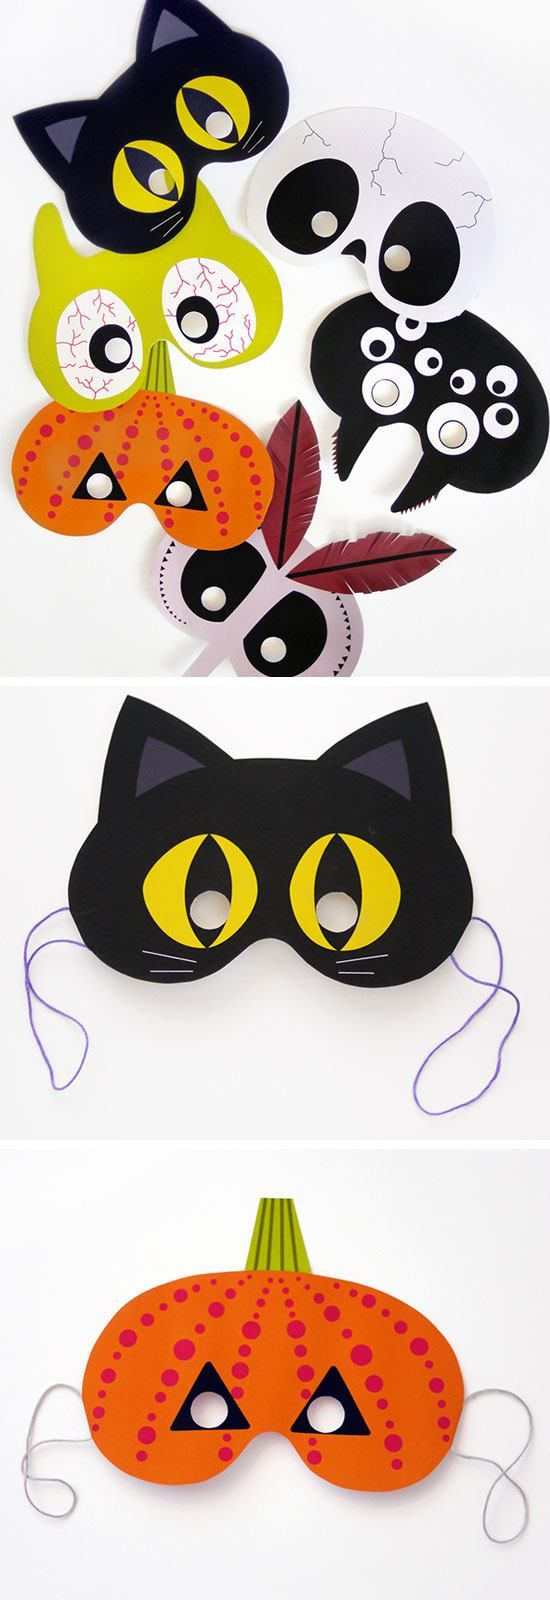 20+ Super Easy Halloween Crafts for Kids to Make! Pinterest - Halloween Decorations For Kids